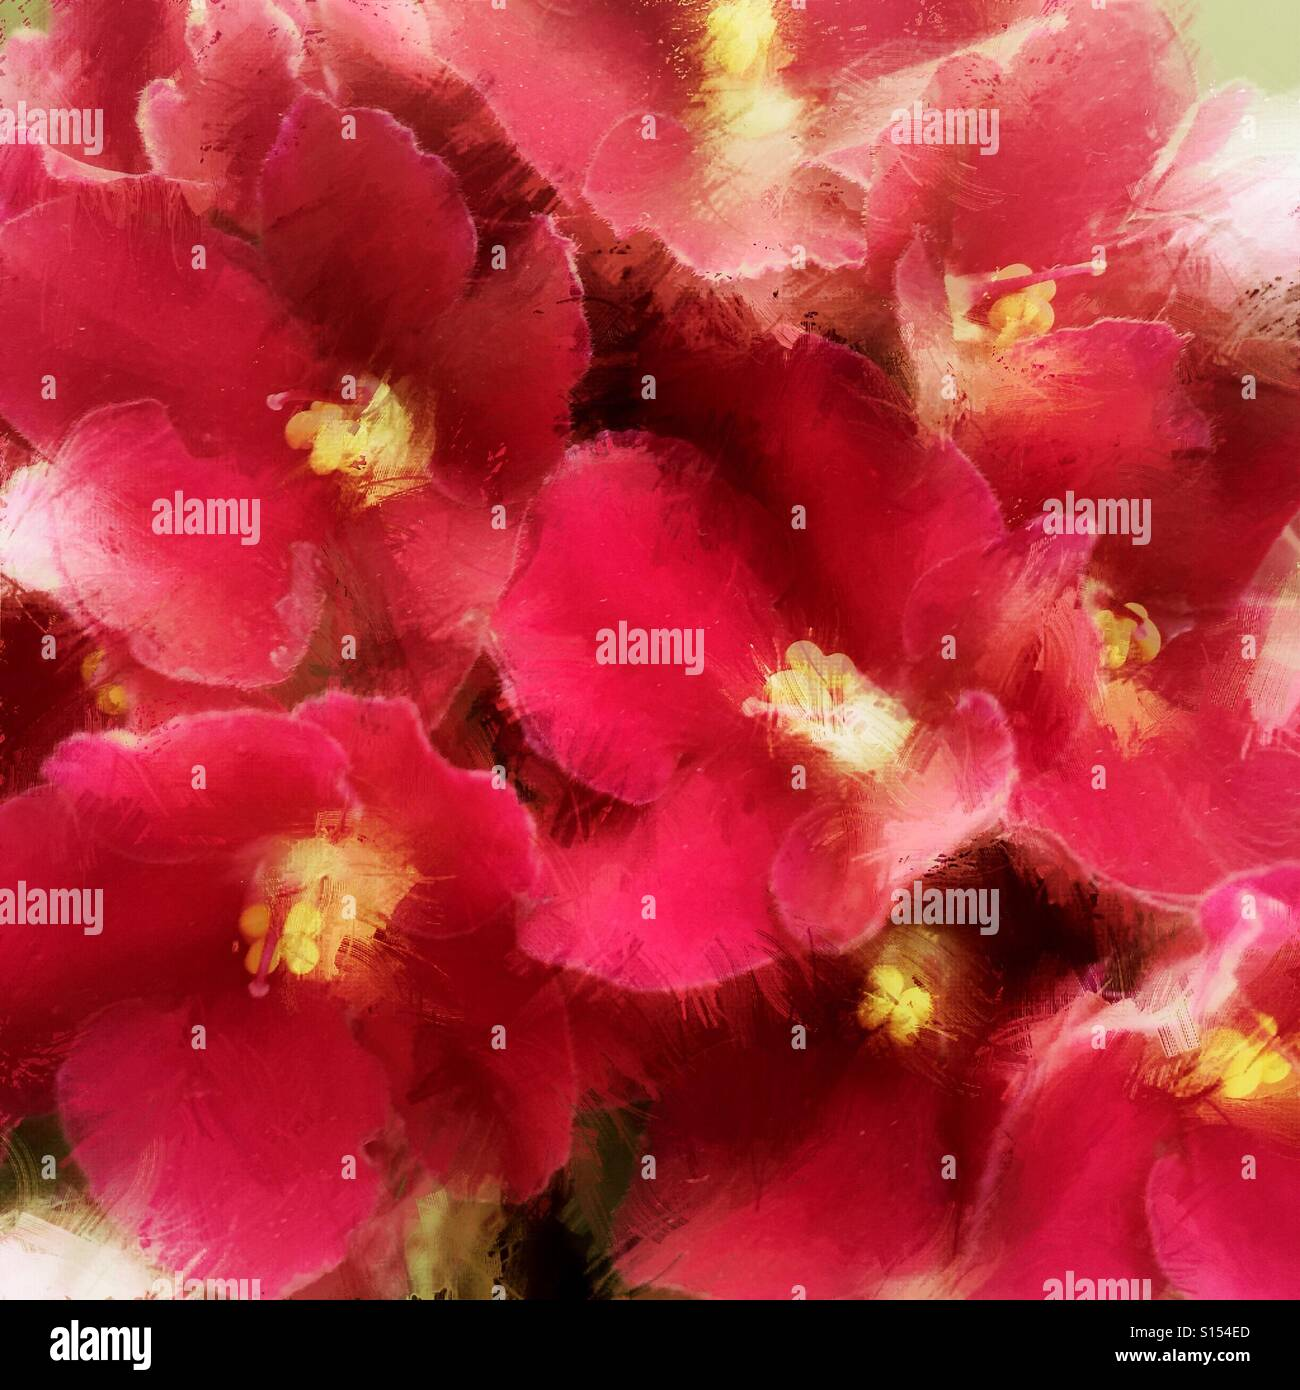 Pink flowers with a painterly effect - Stock Image